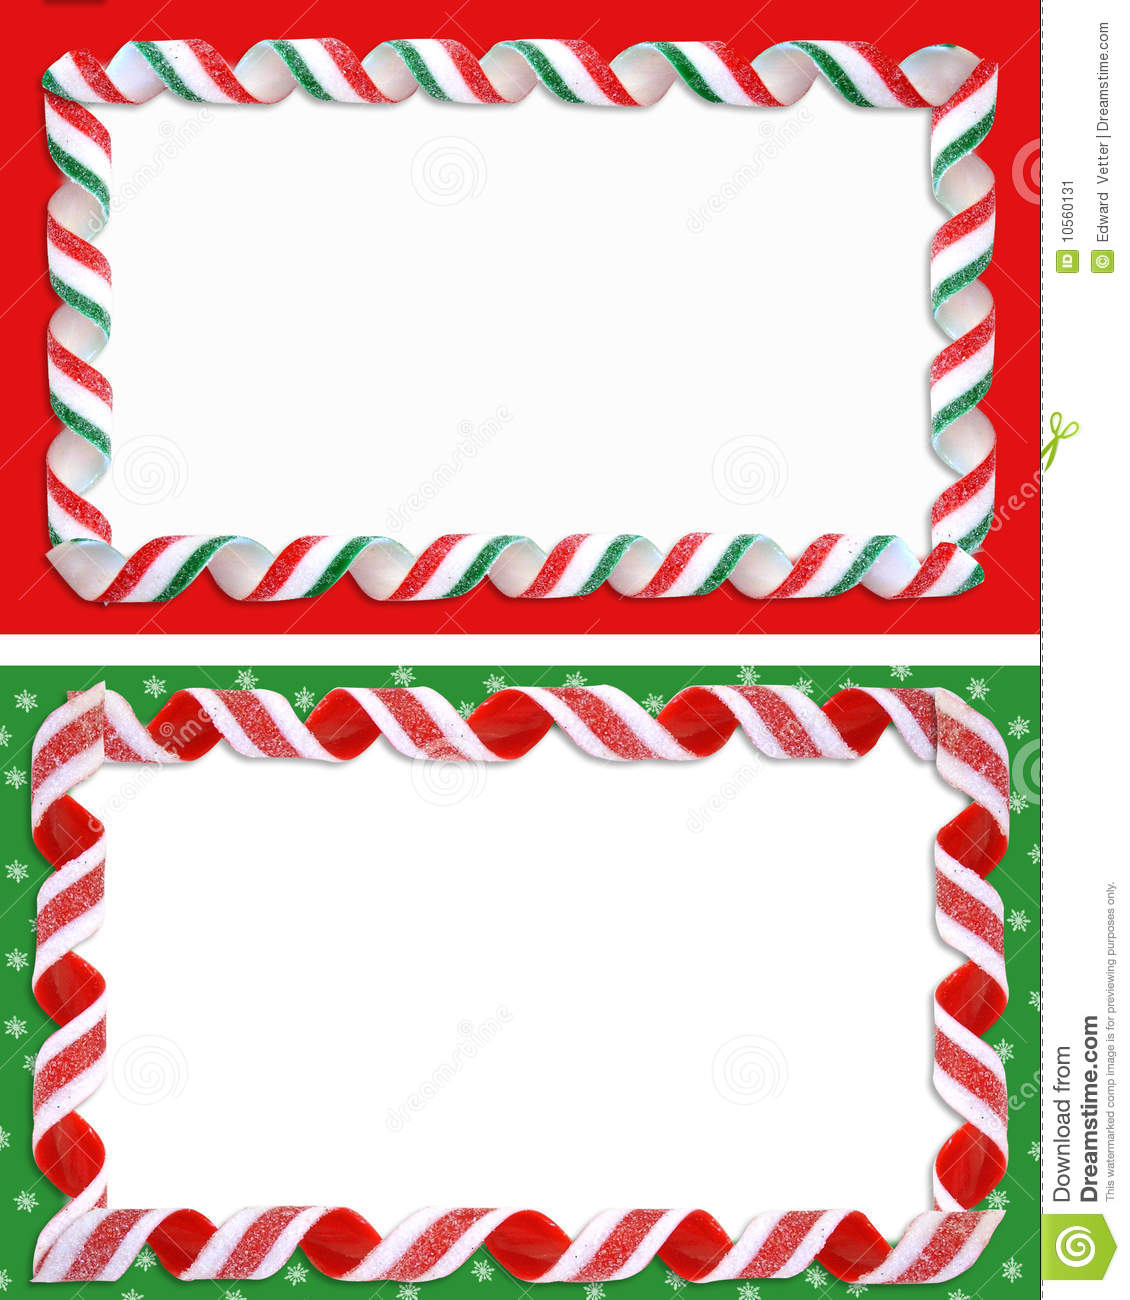 Christmas photo frames templates free fieldstation christmas photo frames templates free christmas border free fieldstation co christmas photo frames templates free jeuxipadfo Images